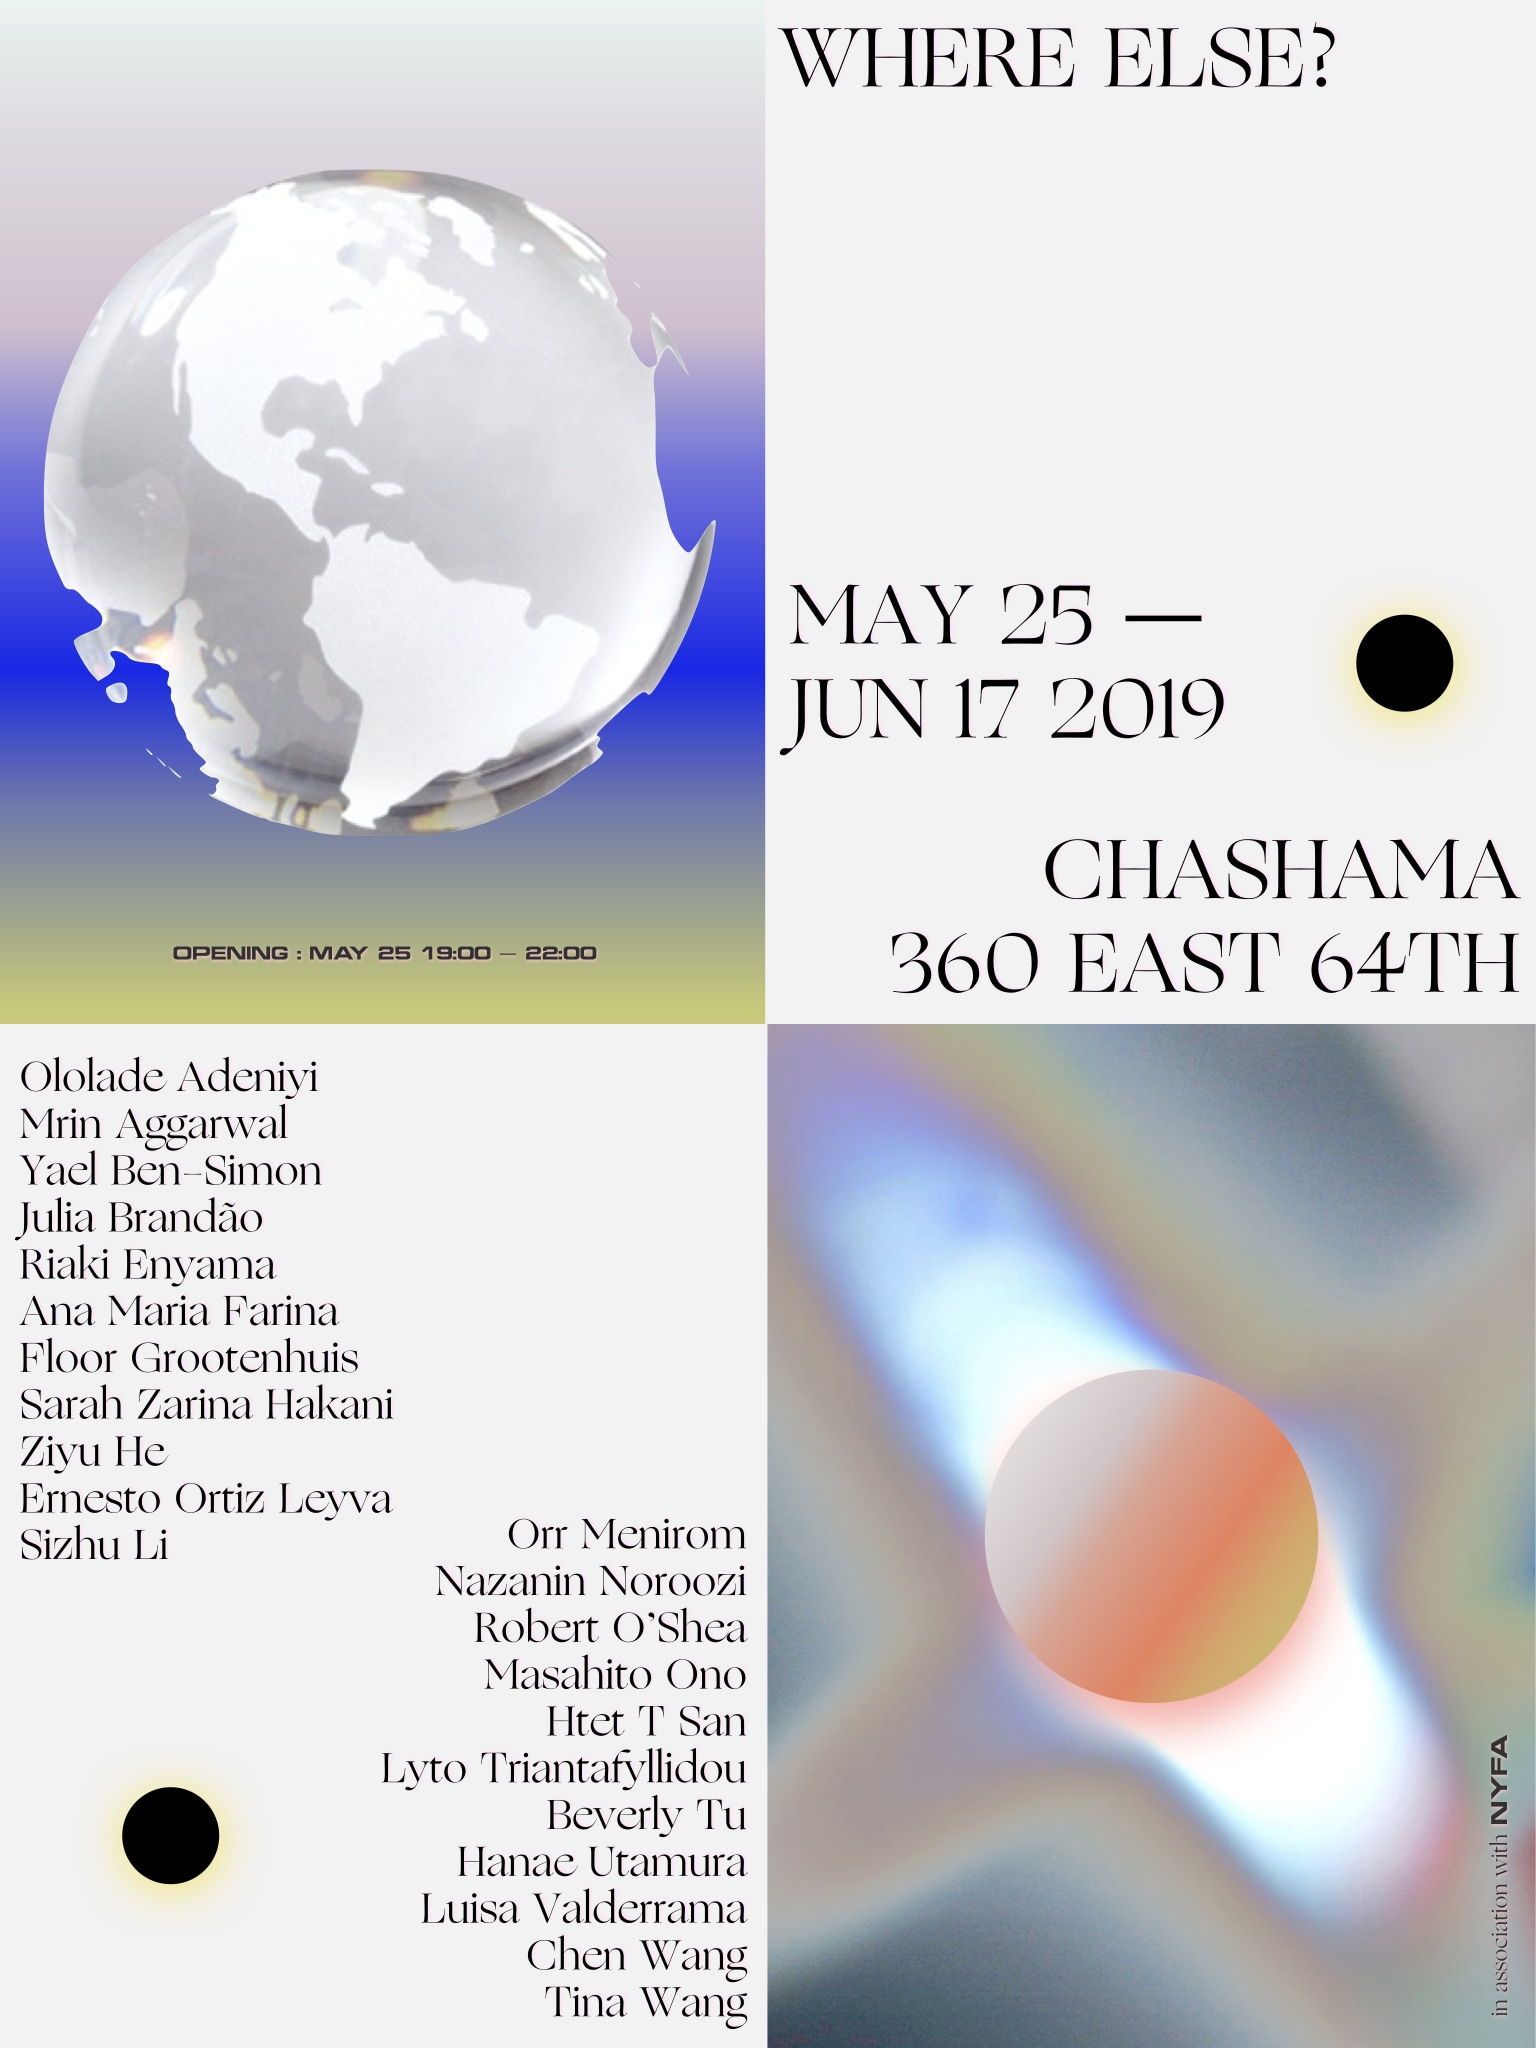 WHERE ELSE? Exhibition Poster